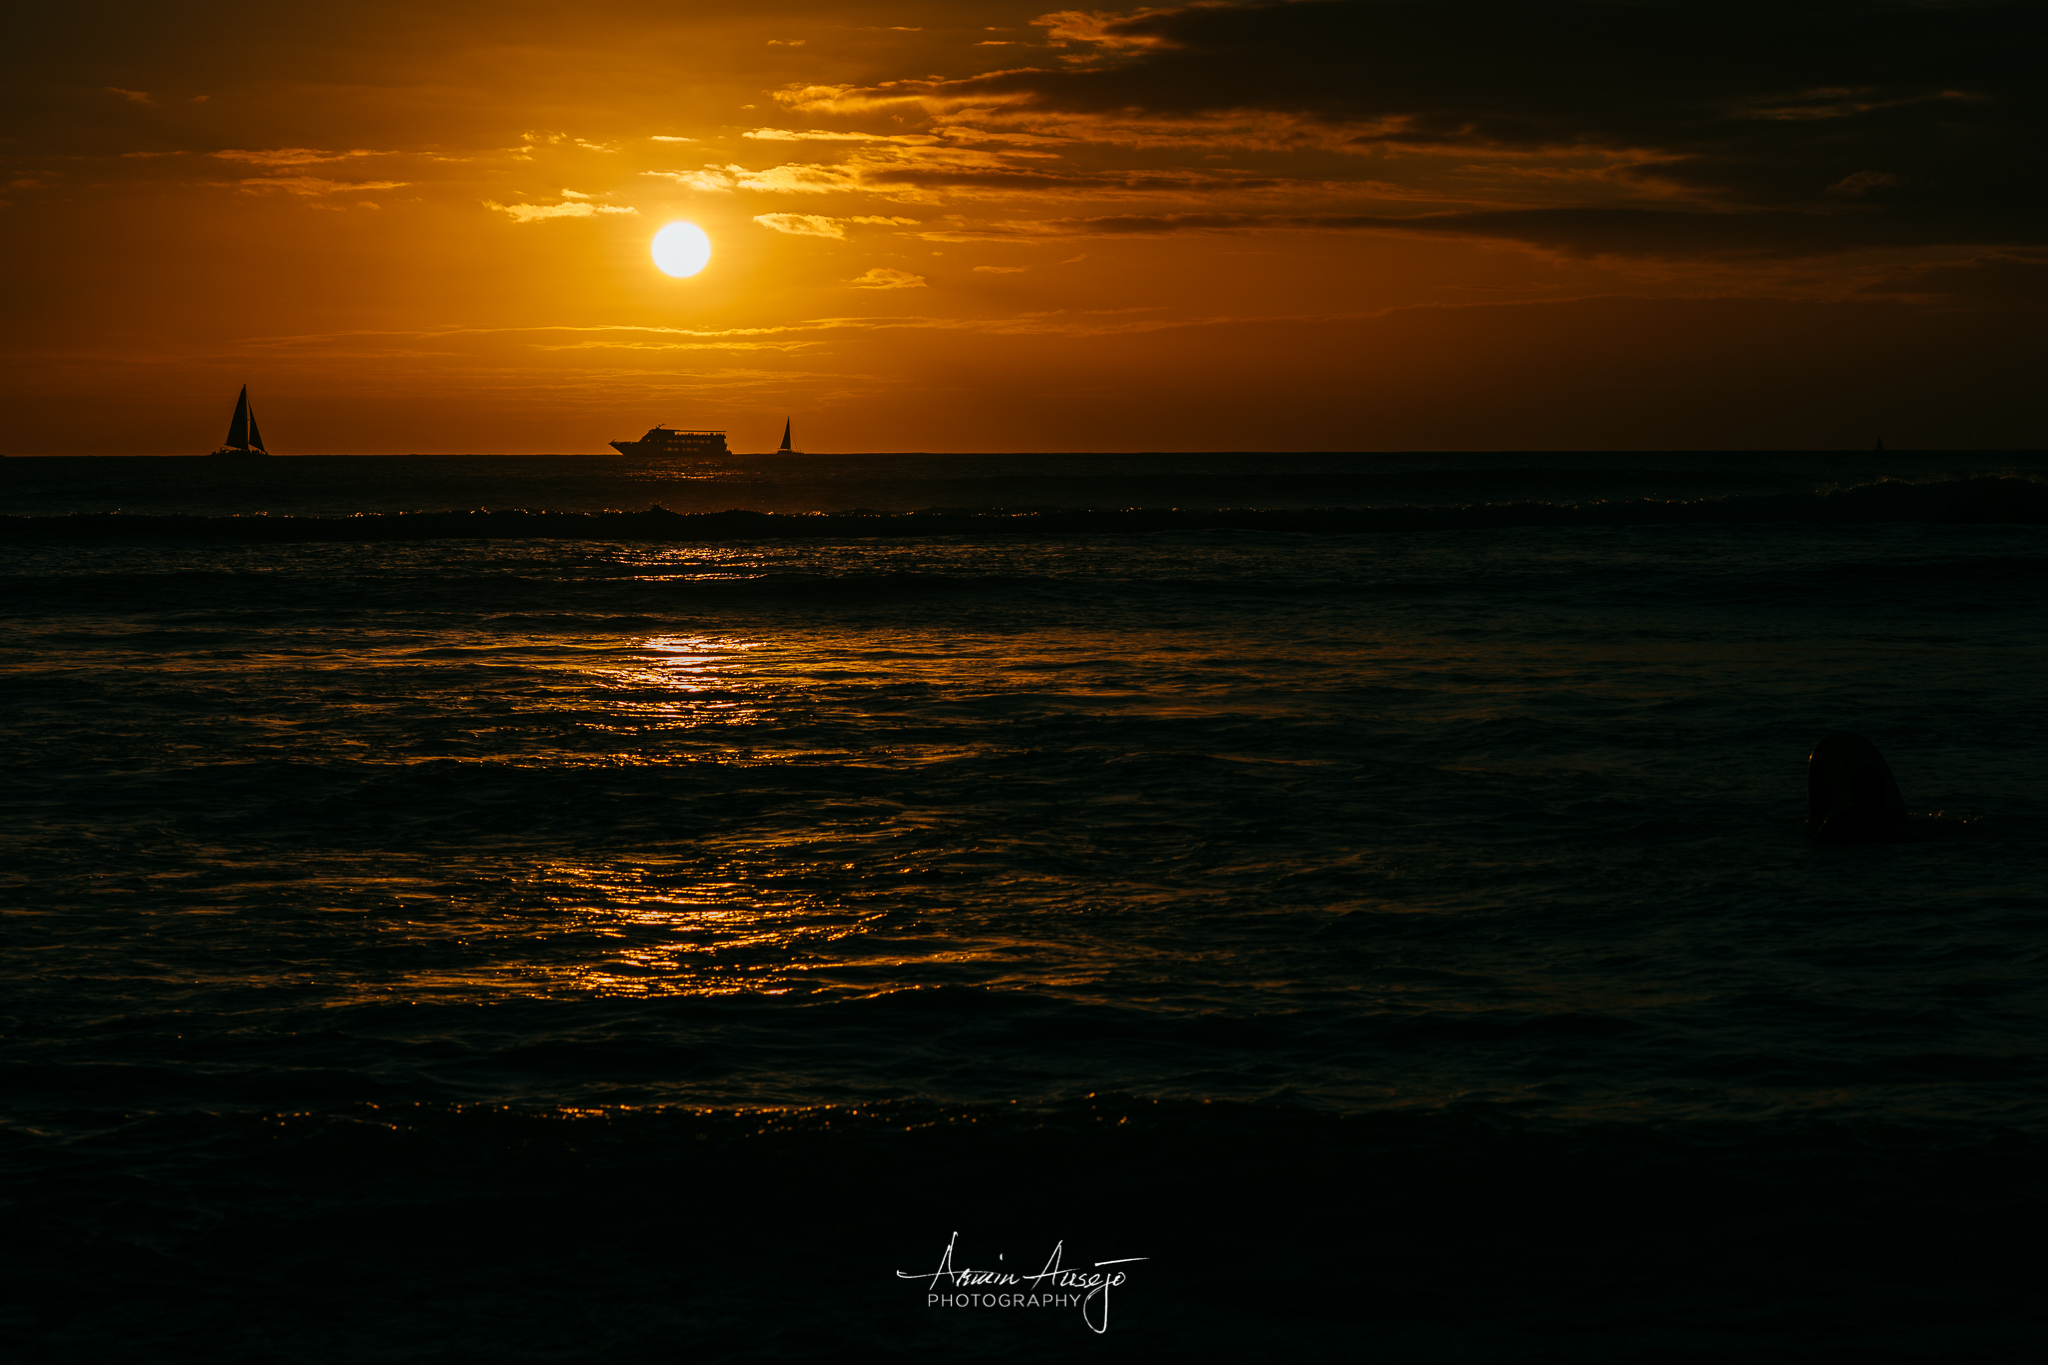 Sunset over Waikiki with the Nikon Z7 and Nikon 85mm f/1.4G